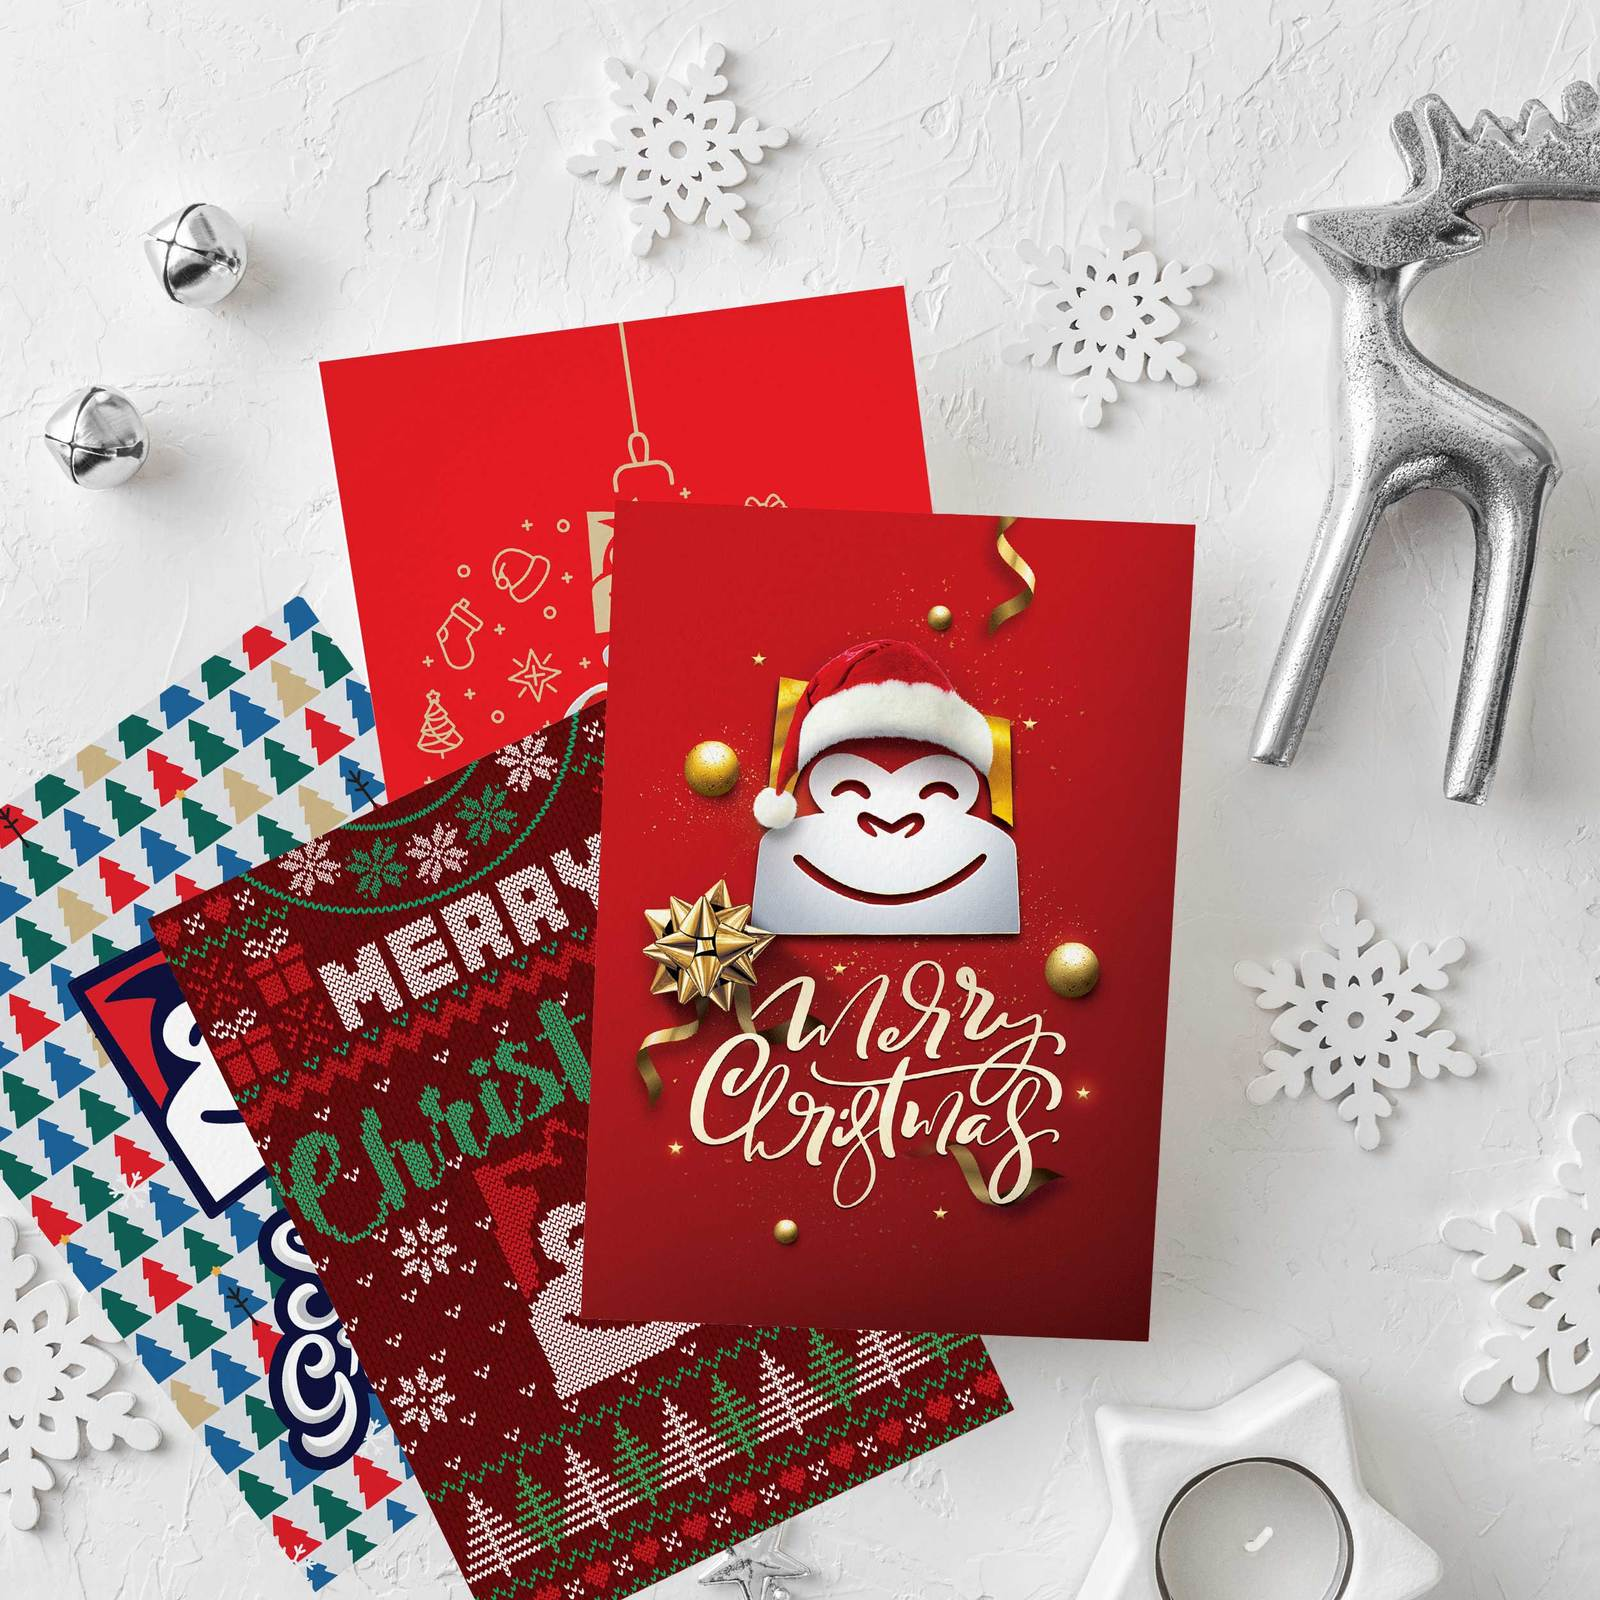 Gorilla Gift: Christmas Cards - Assorted Designs (Pack of 10) image